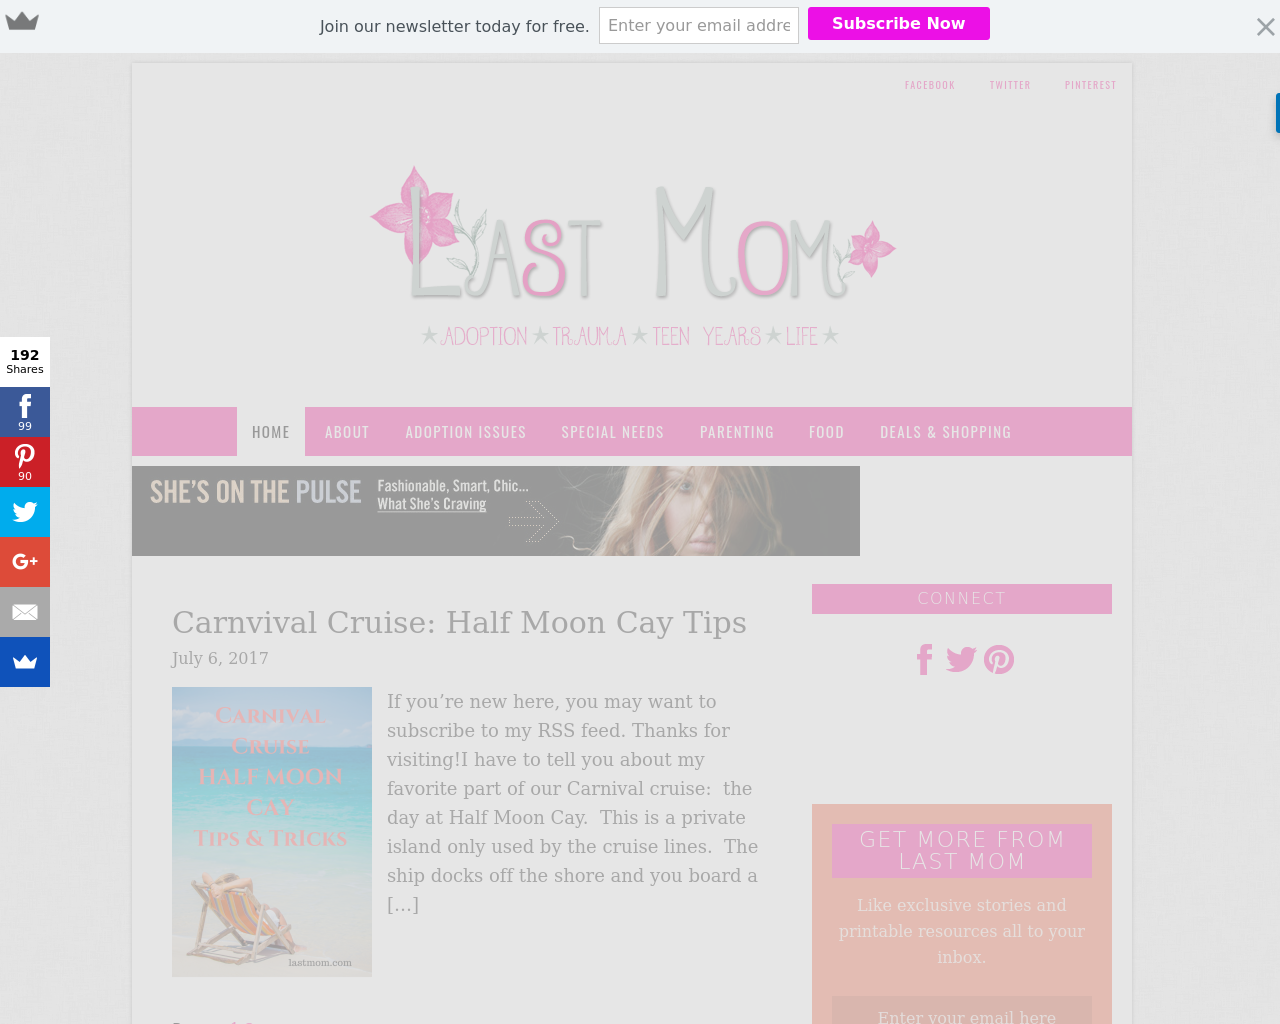 Last-Mom-Advertising-Reviews-Pricing